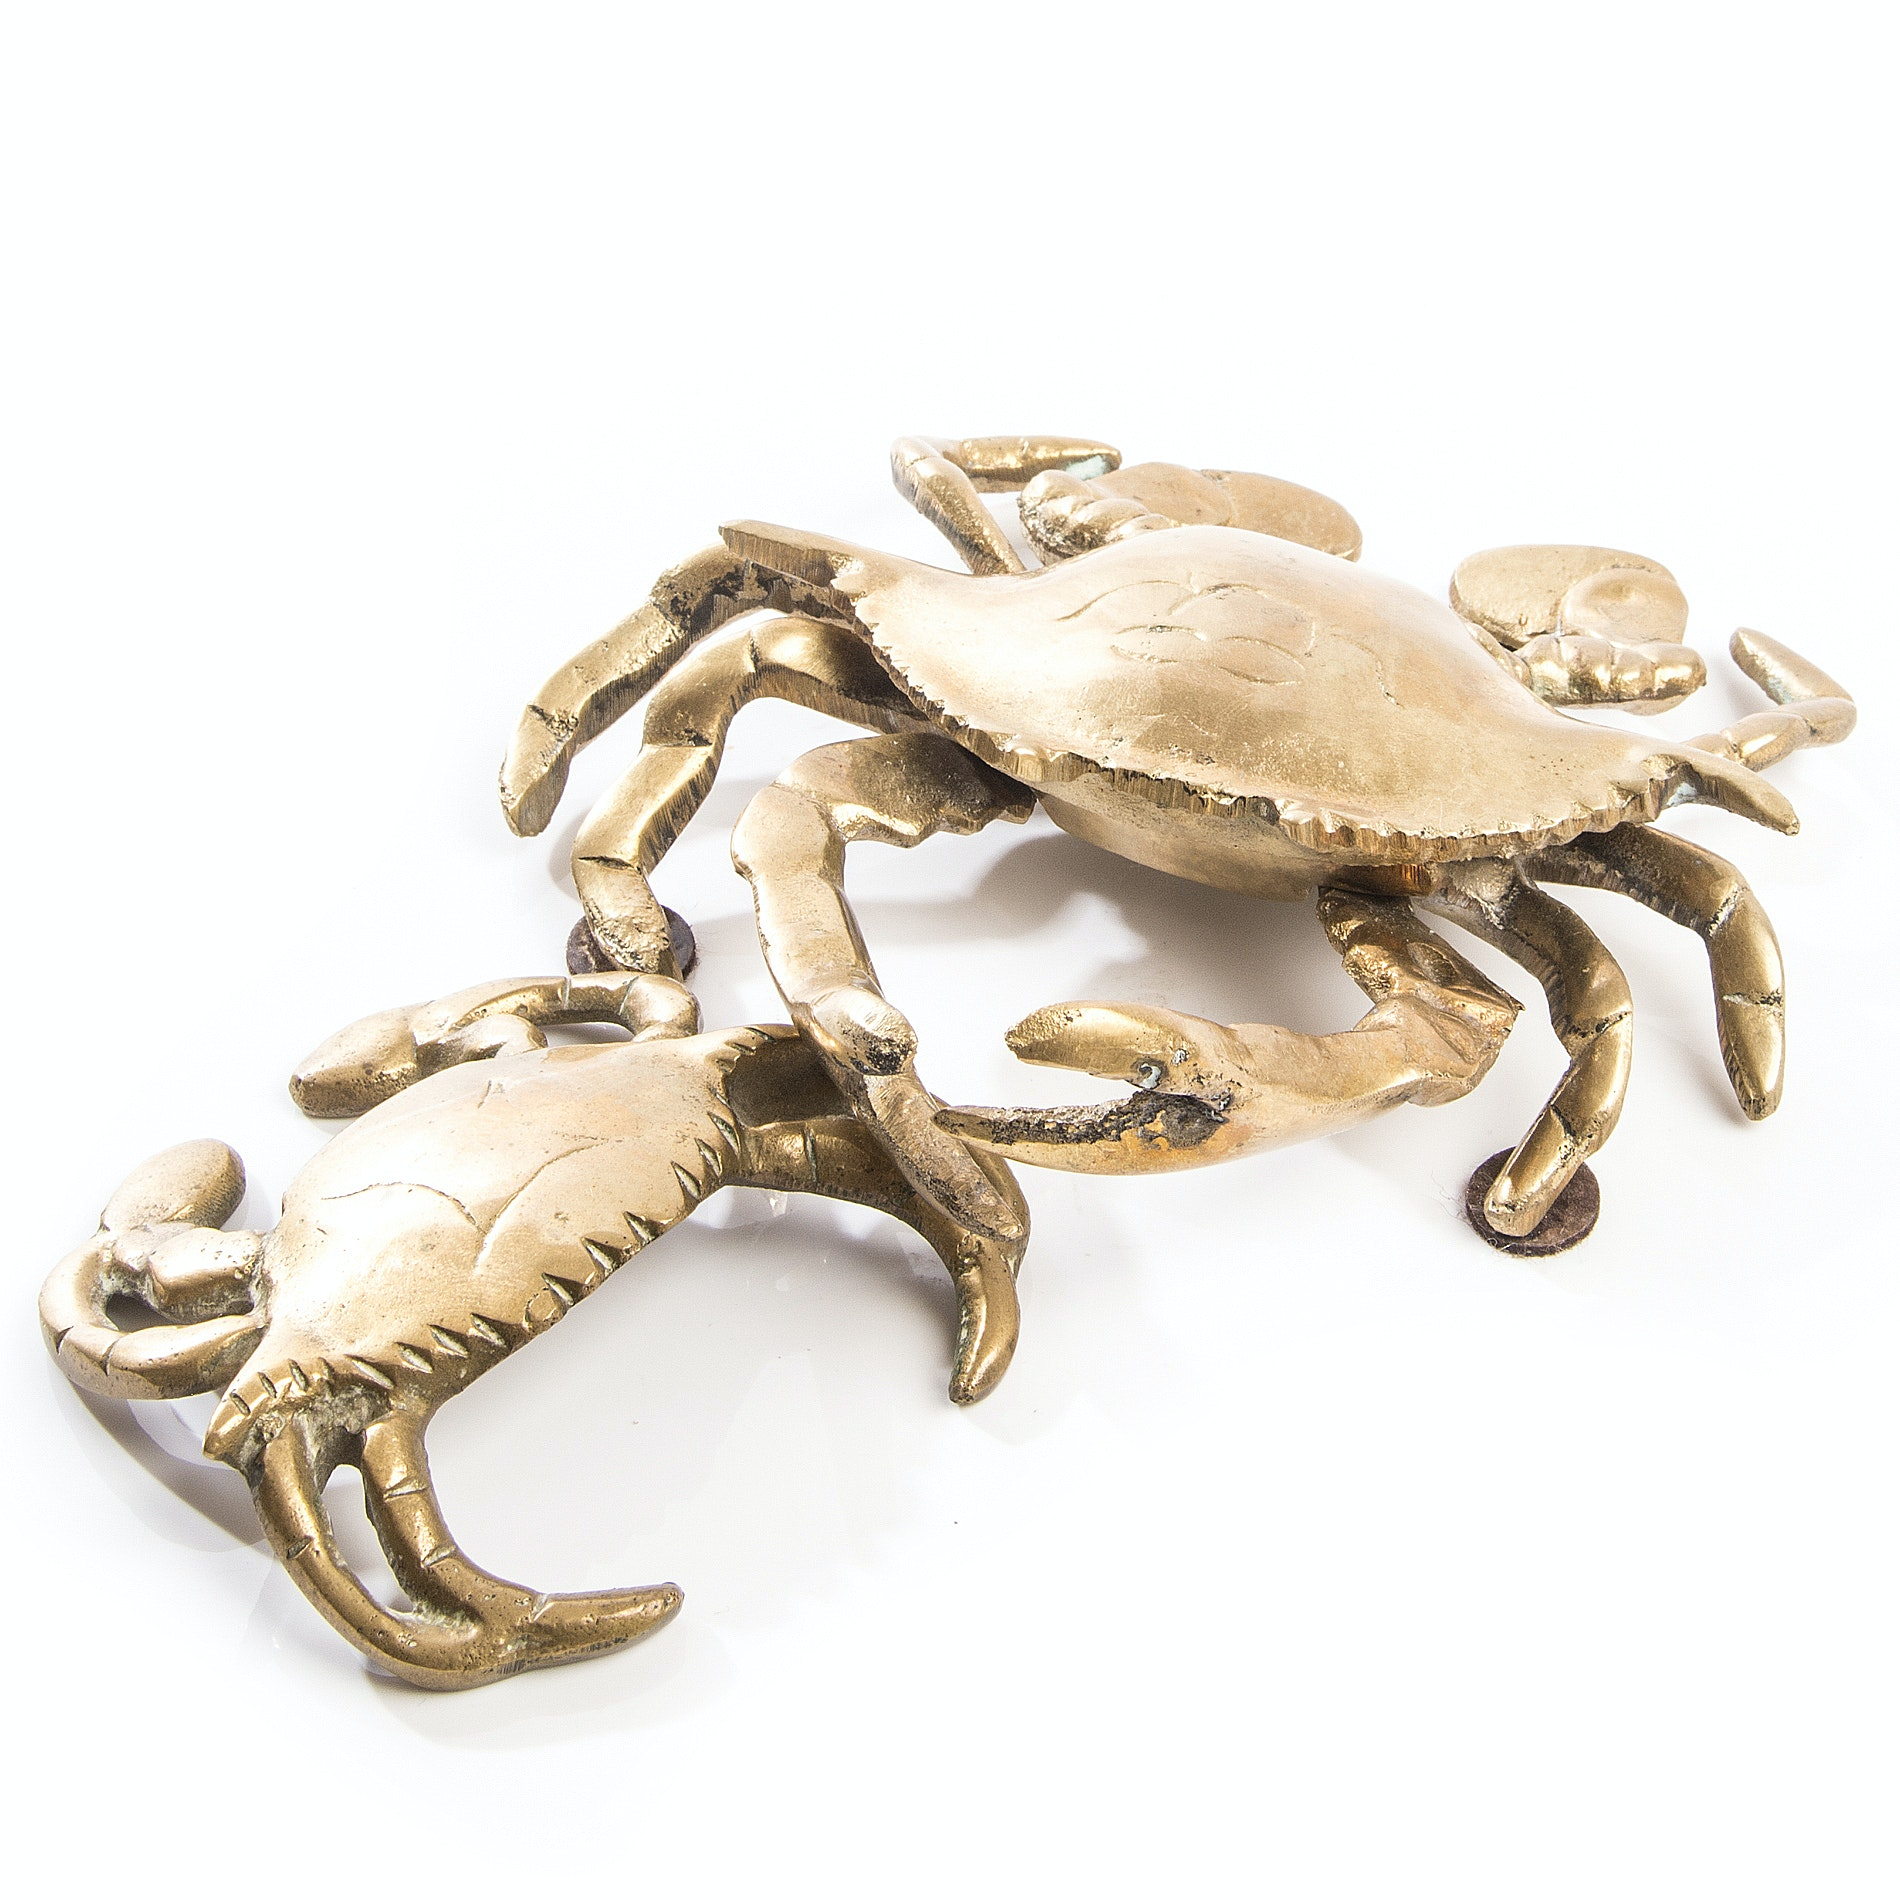 Vintage Nautical Brass Crab Figurines Including Inkwell